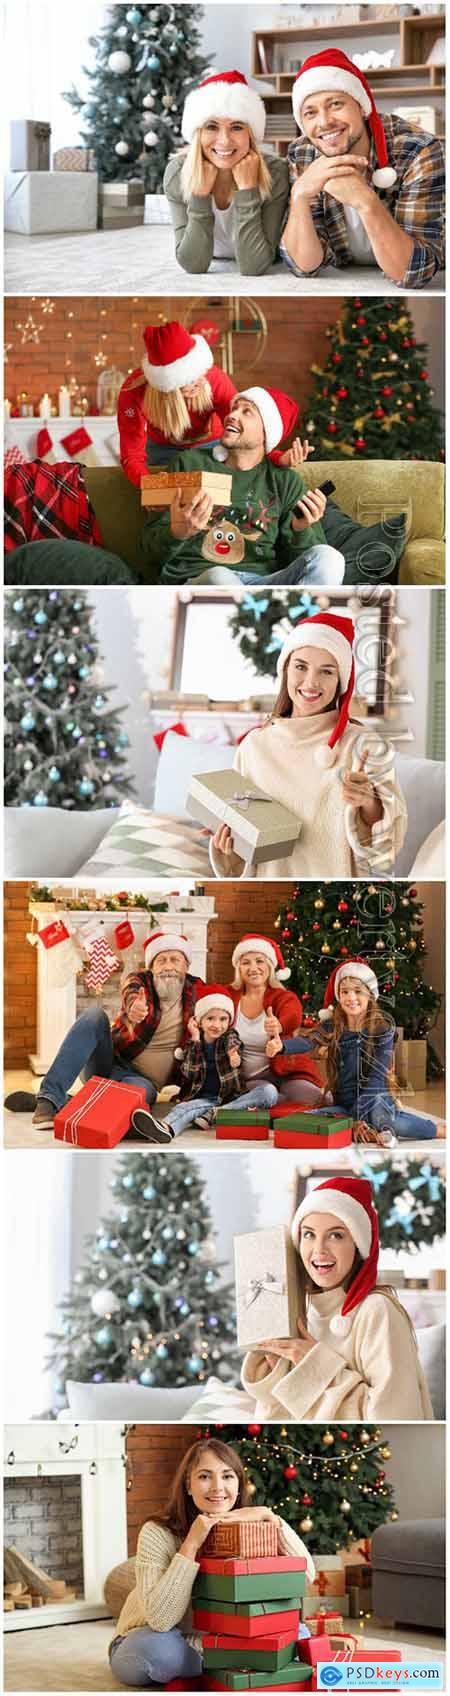 Happy people in Christmas, New year holidays